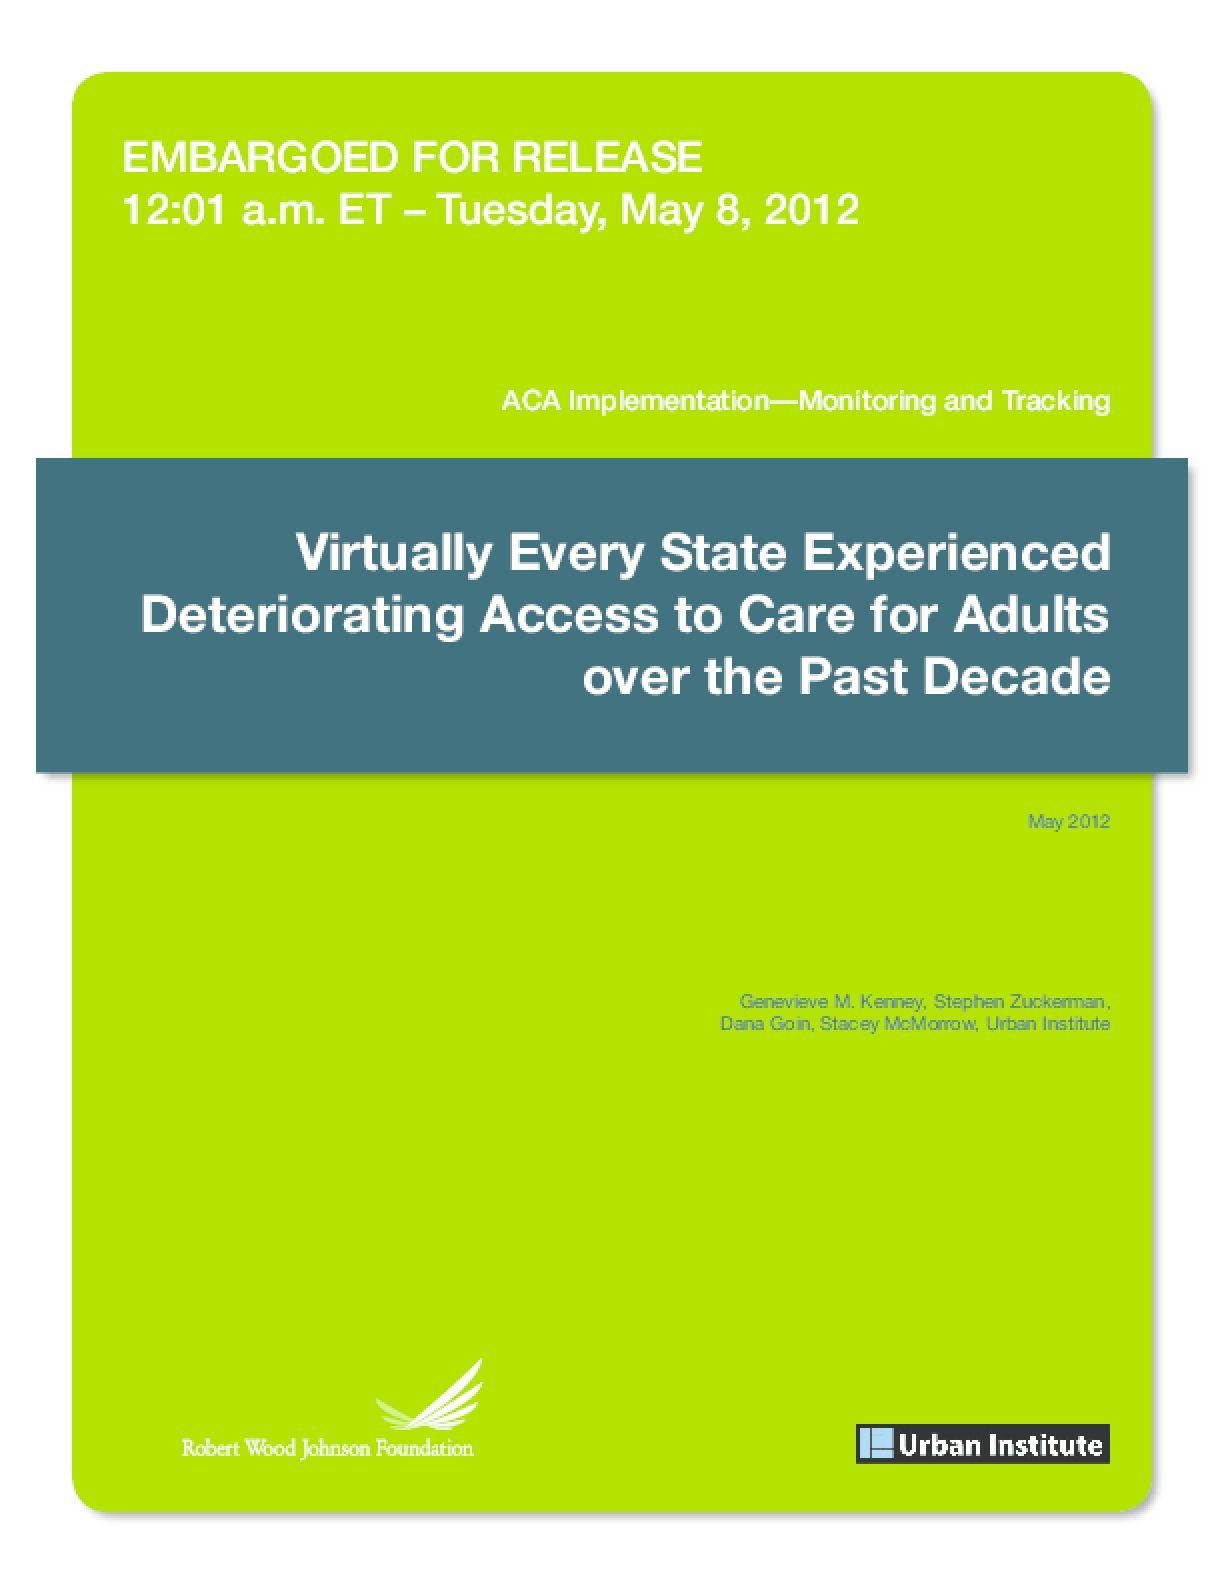 Virtually Every State Experienced Deteriorating Access to Care for Adults Over the Past Decade